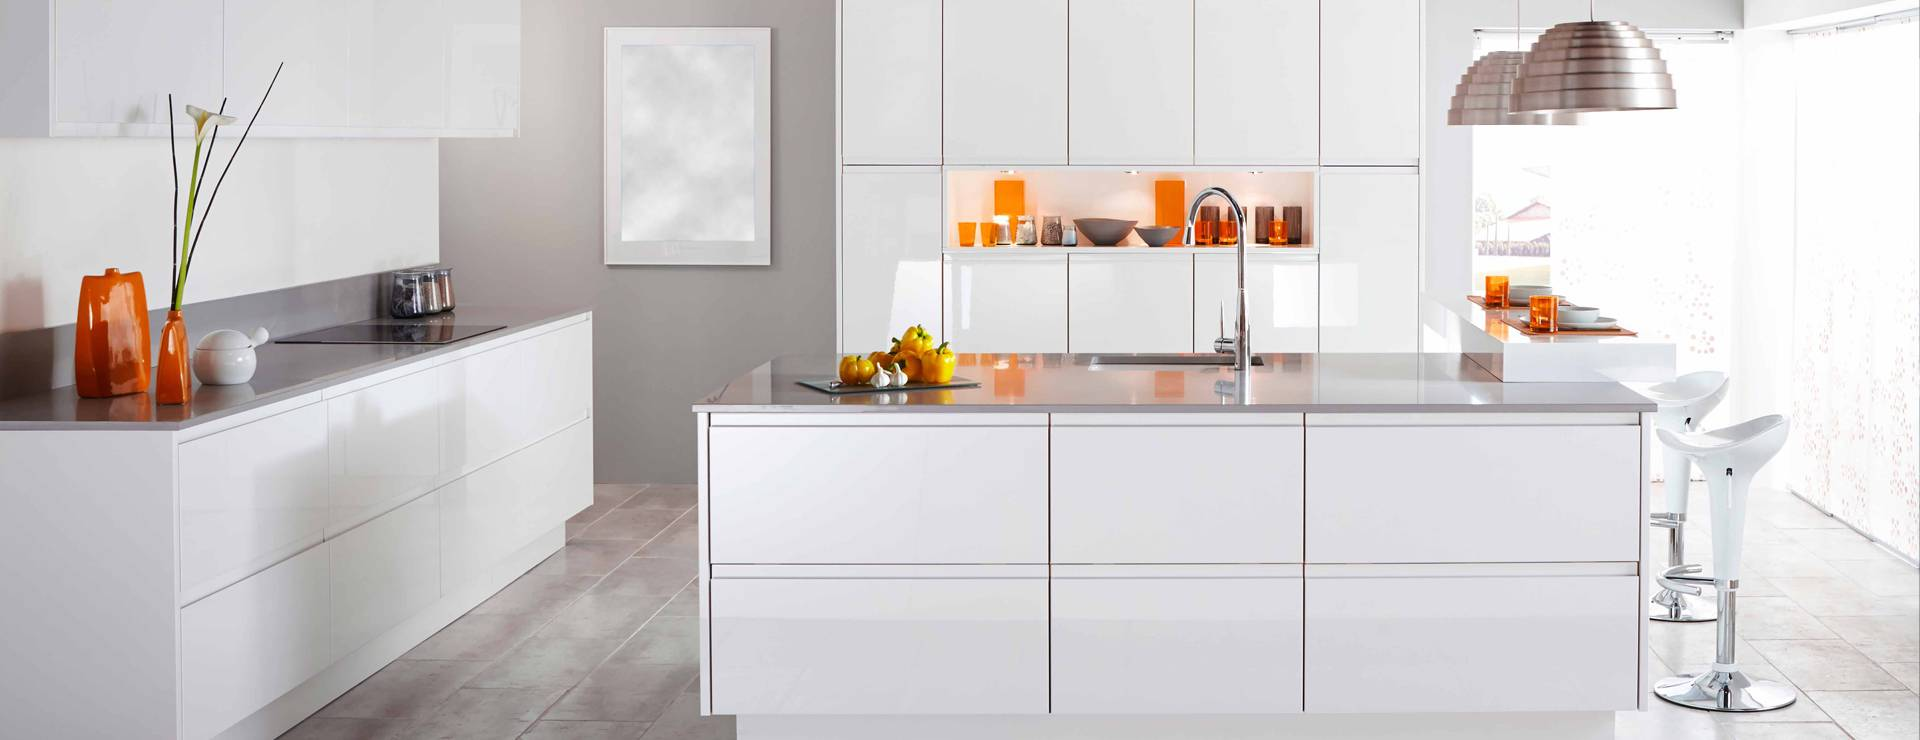 kitchen remodel / renvation / Pickering, Ajax, Whitby, Brooklin, Oshawa, Courtice, Bowmanville, Scarborough